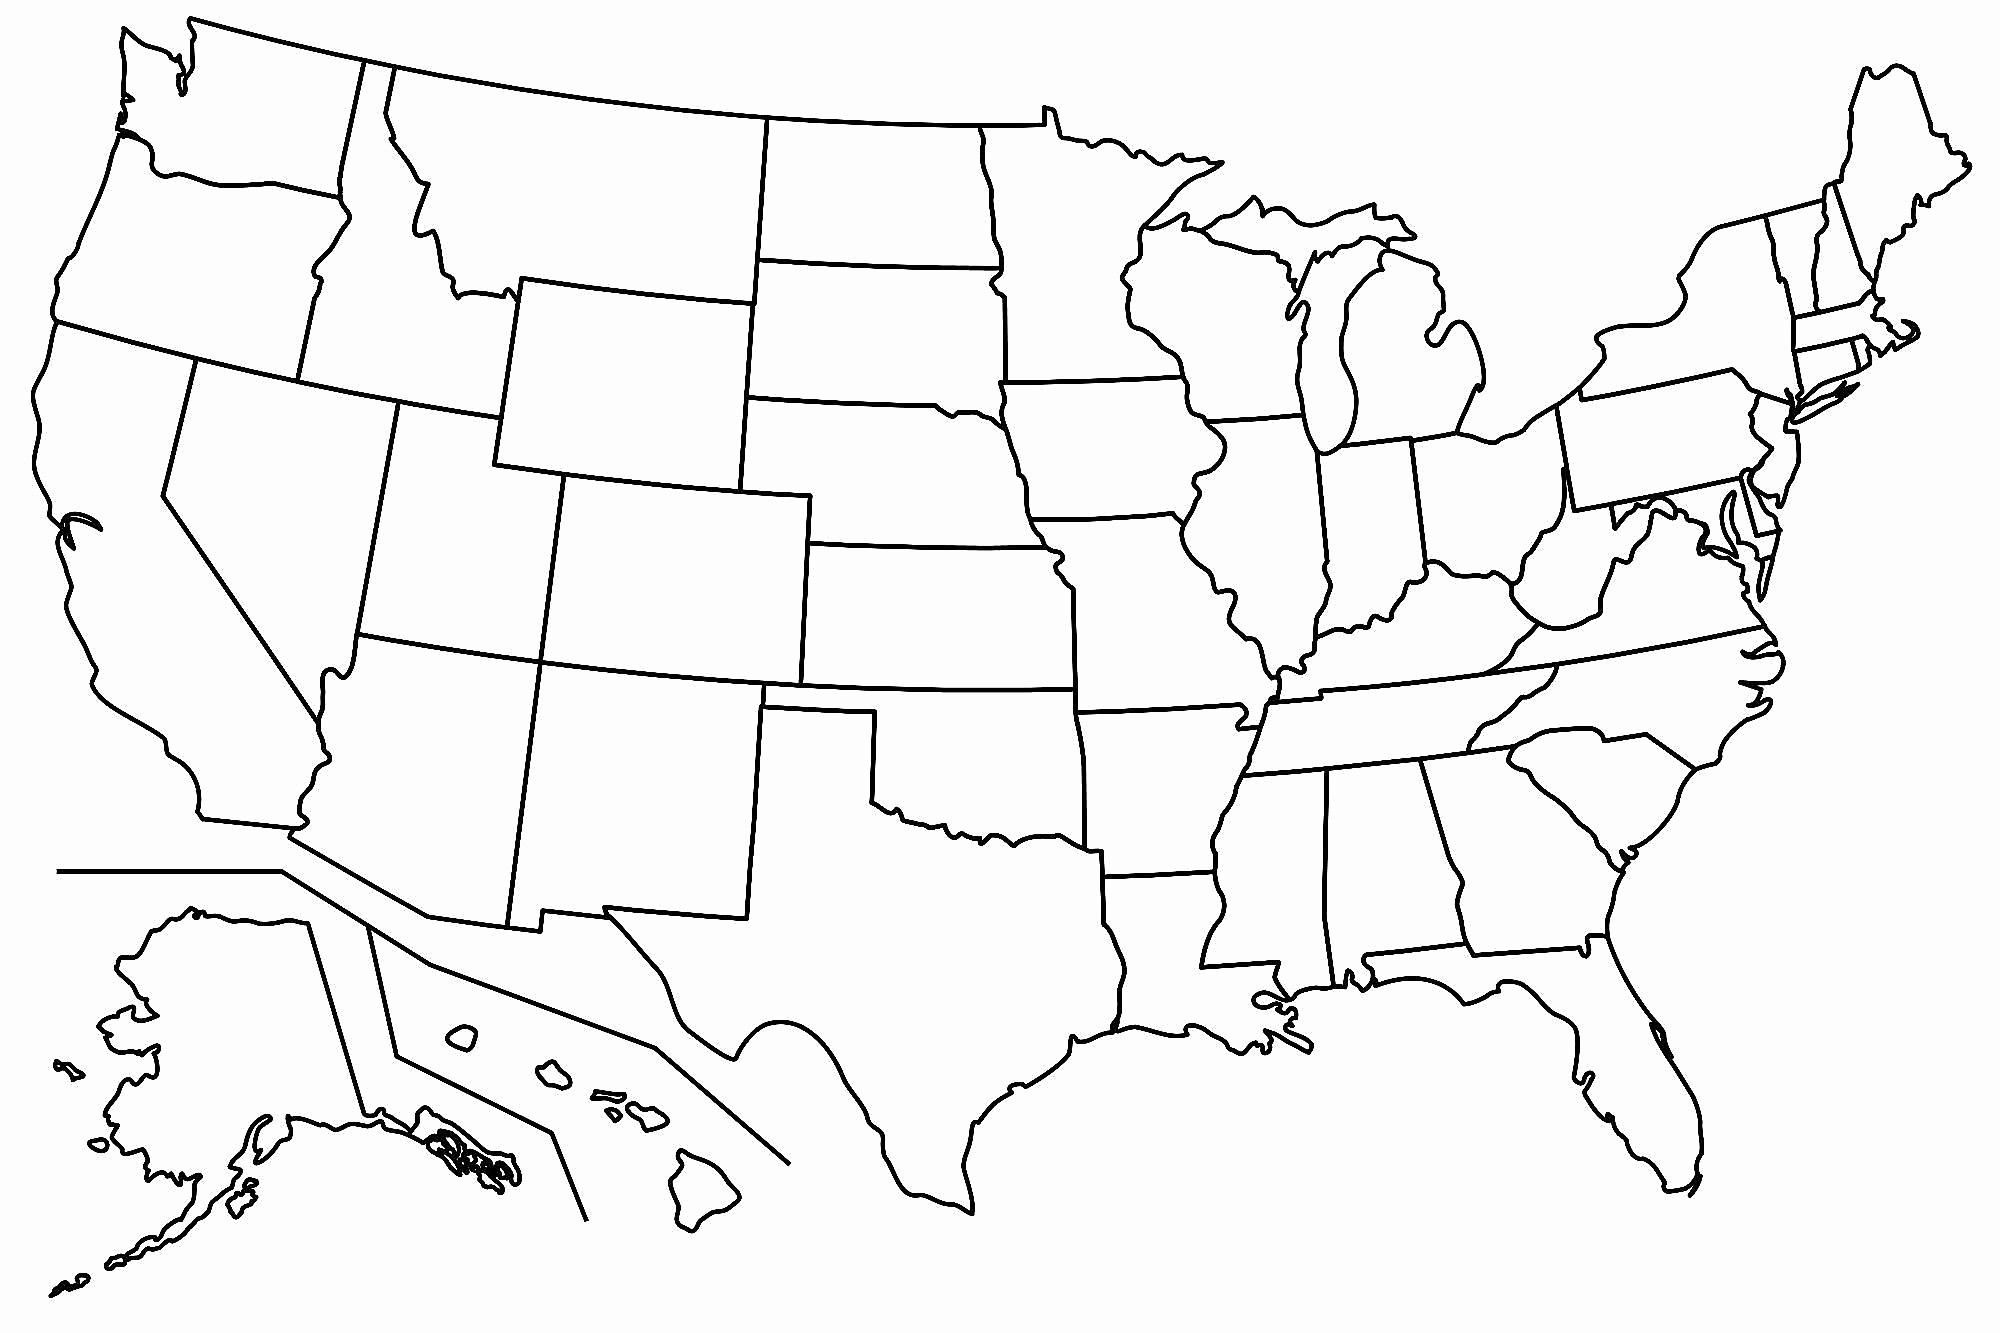 Free Printable Us Map Blank Blank Us Map Printable My Blog Printable - Free Printable Blank Map Of The United States Of America